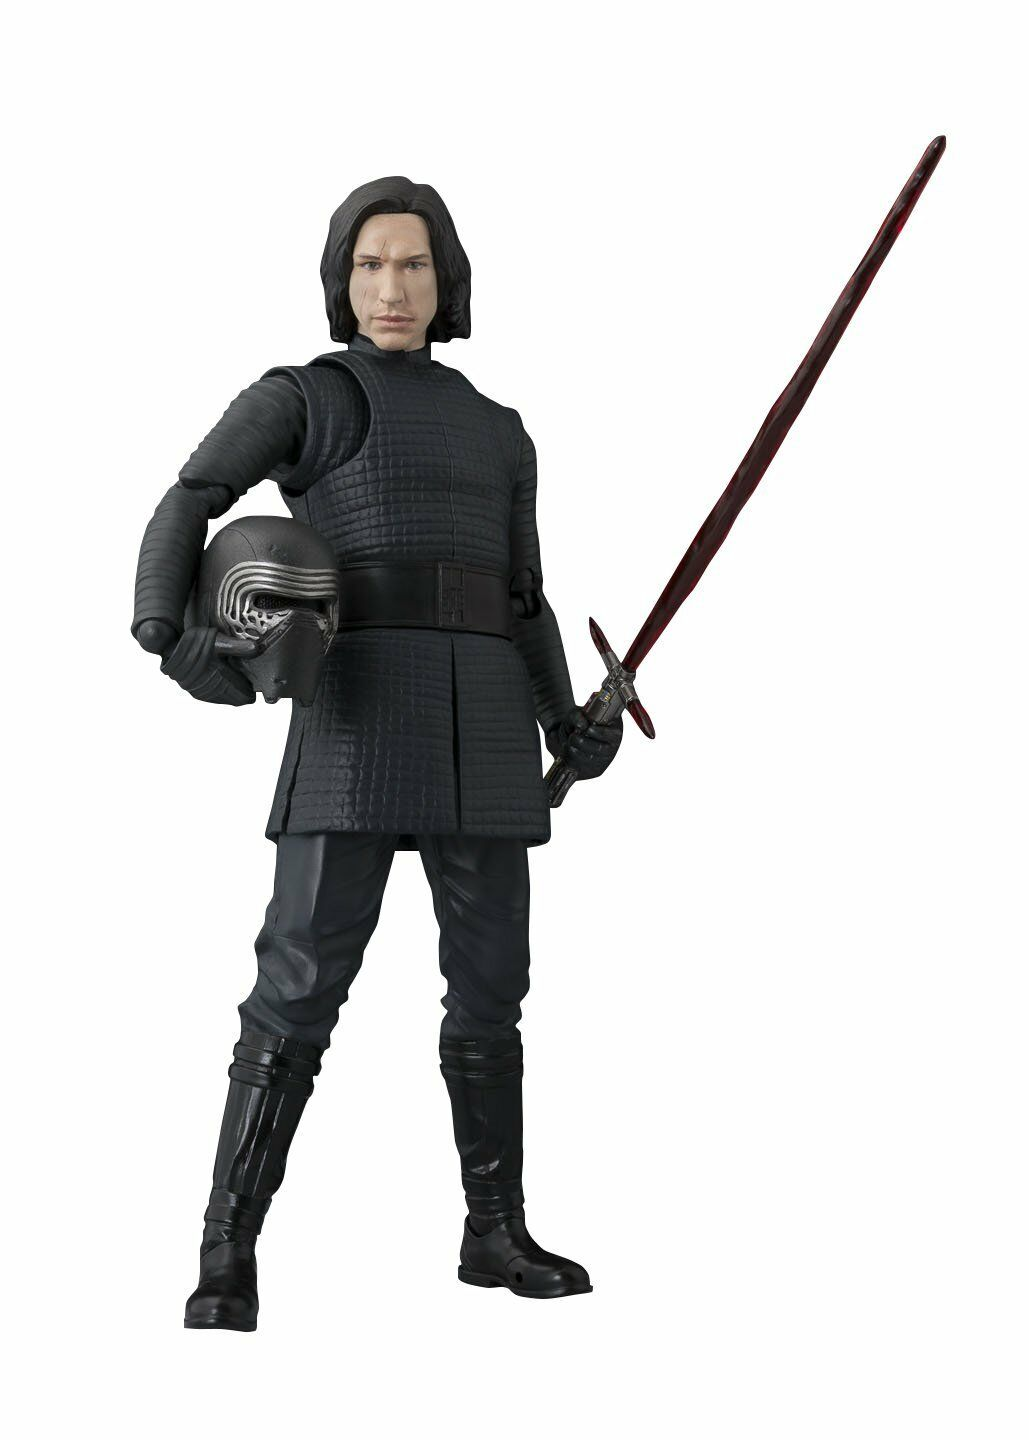 Bandai S.H.Figuarts Star Wars Kylo Ren The Last Jedi Japan version